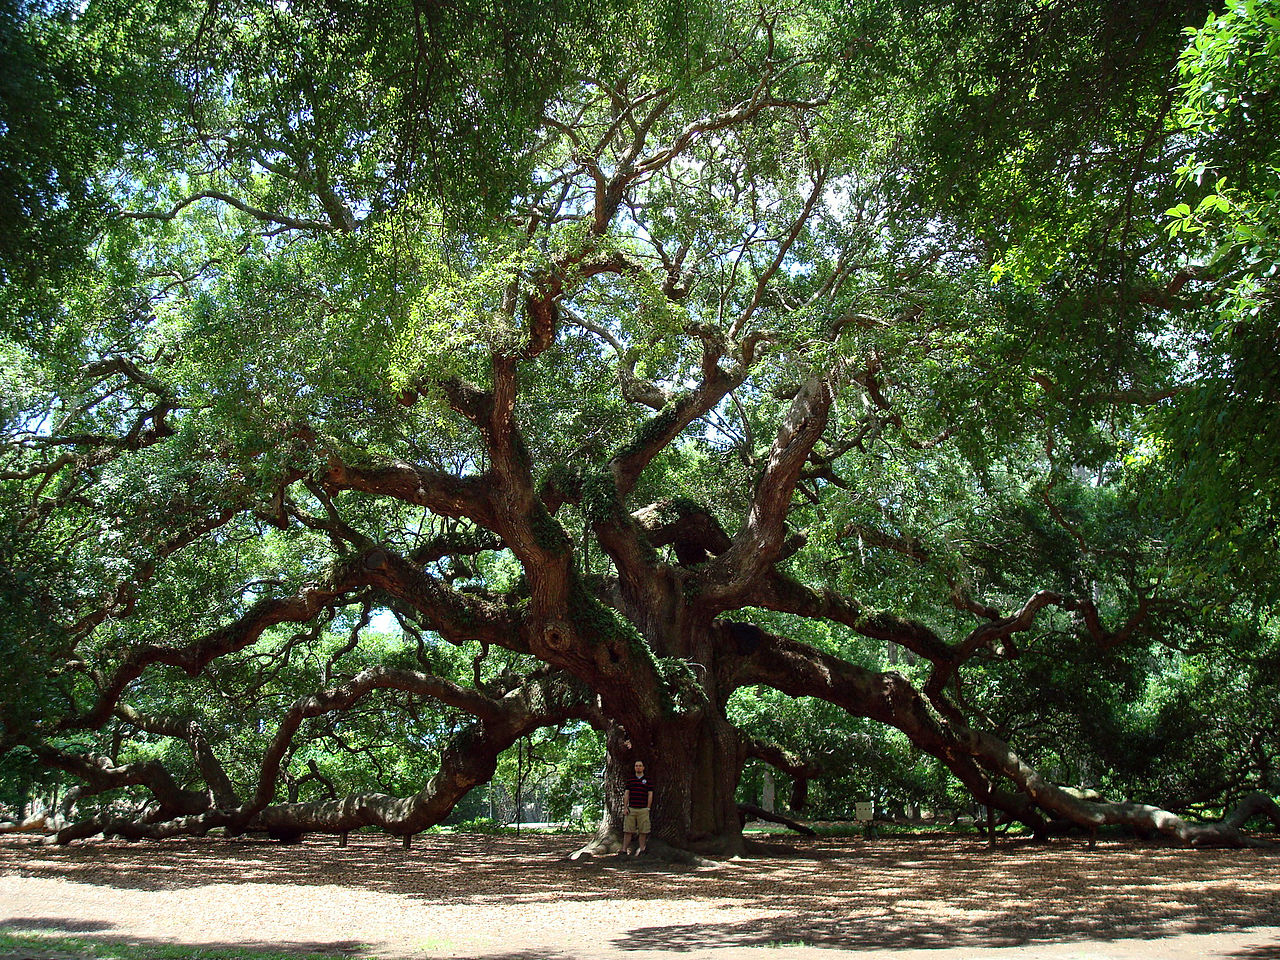 The Angel Oak on Johns Island, South Carolina